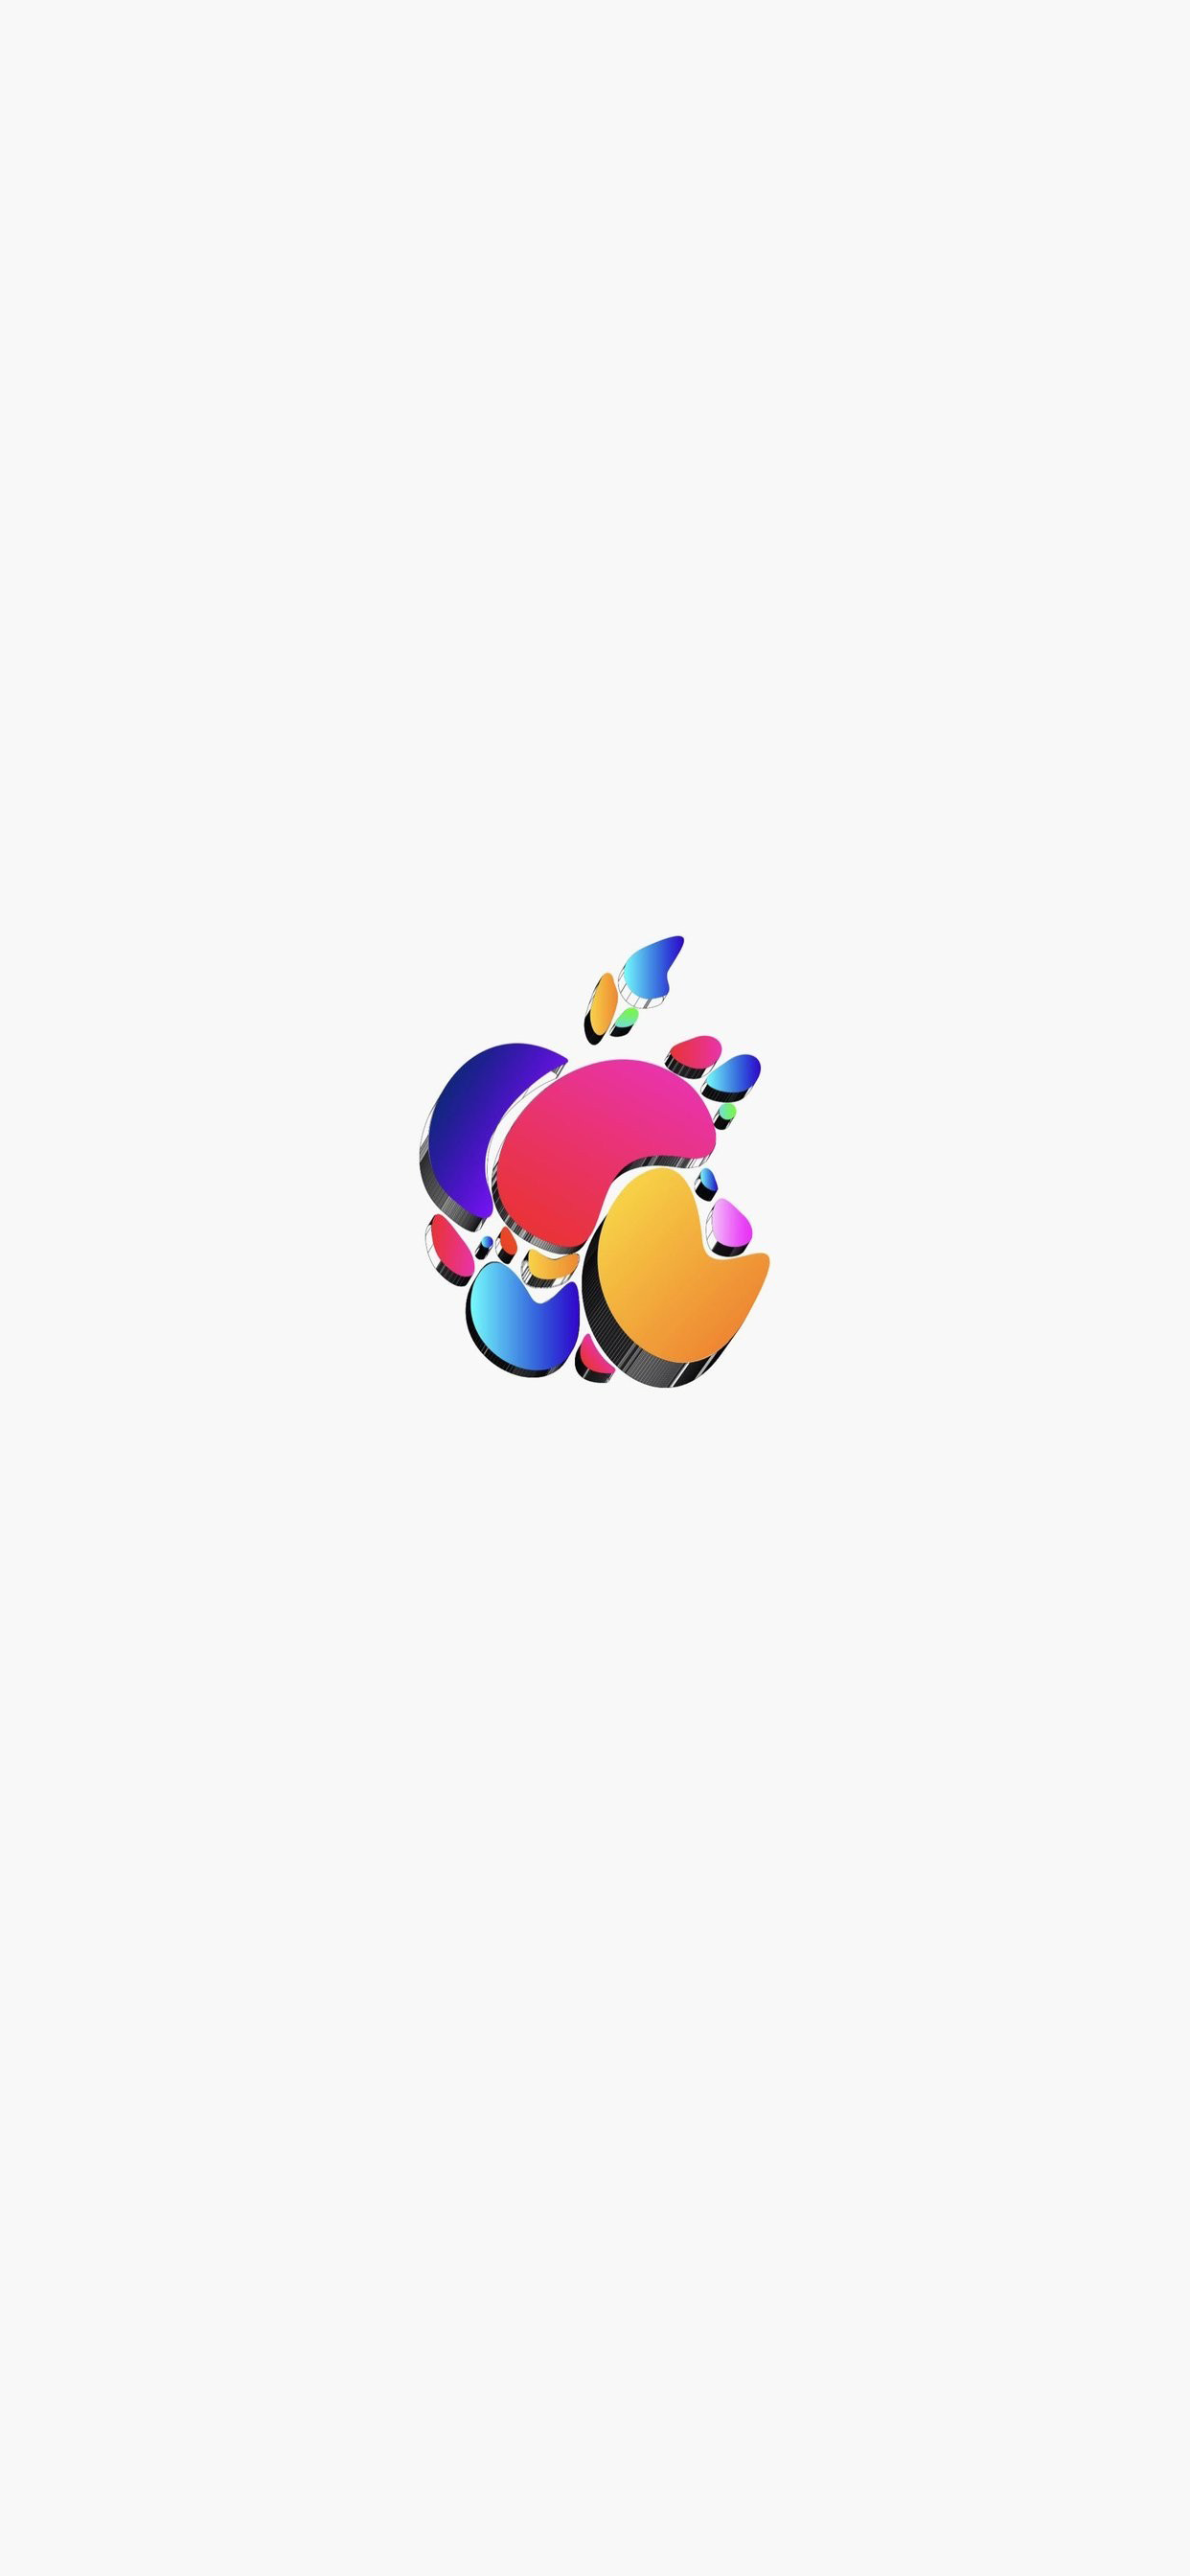 29 Apple logo